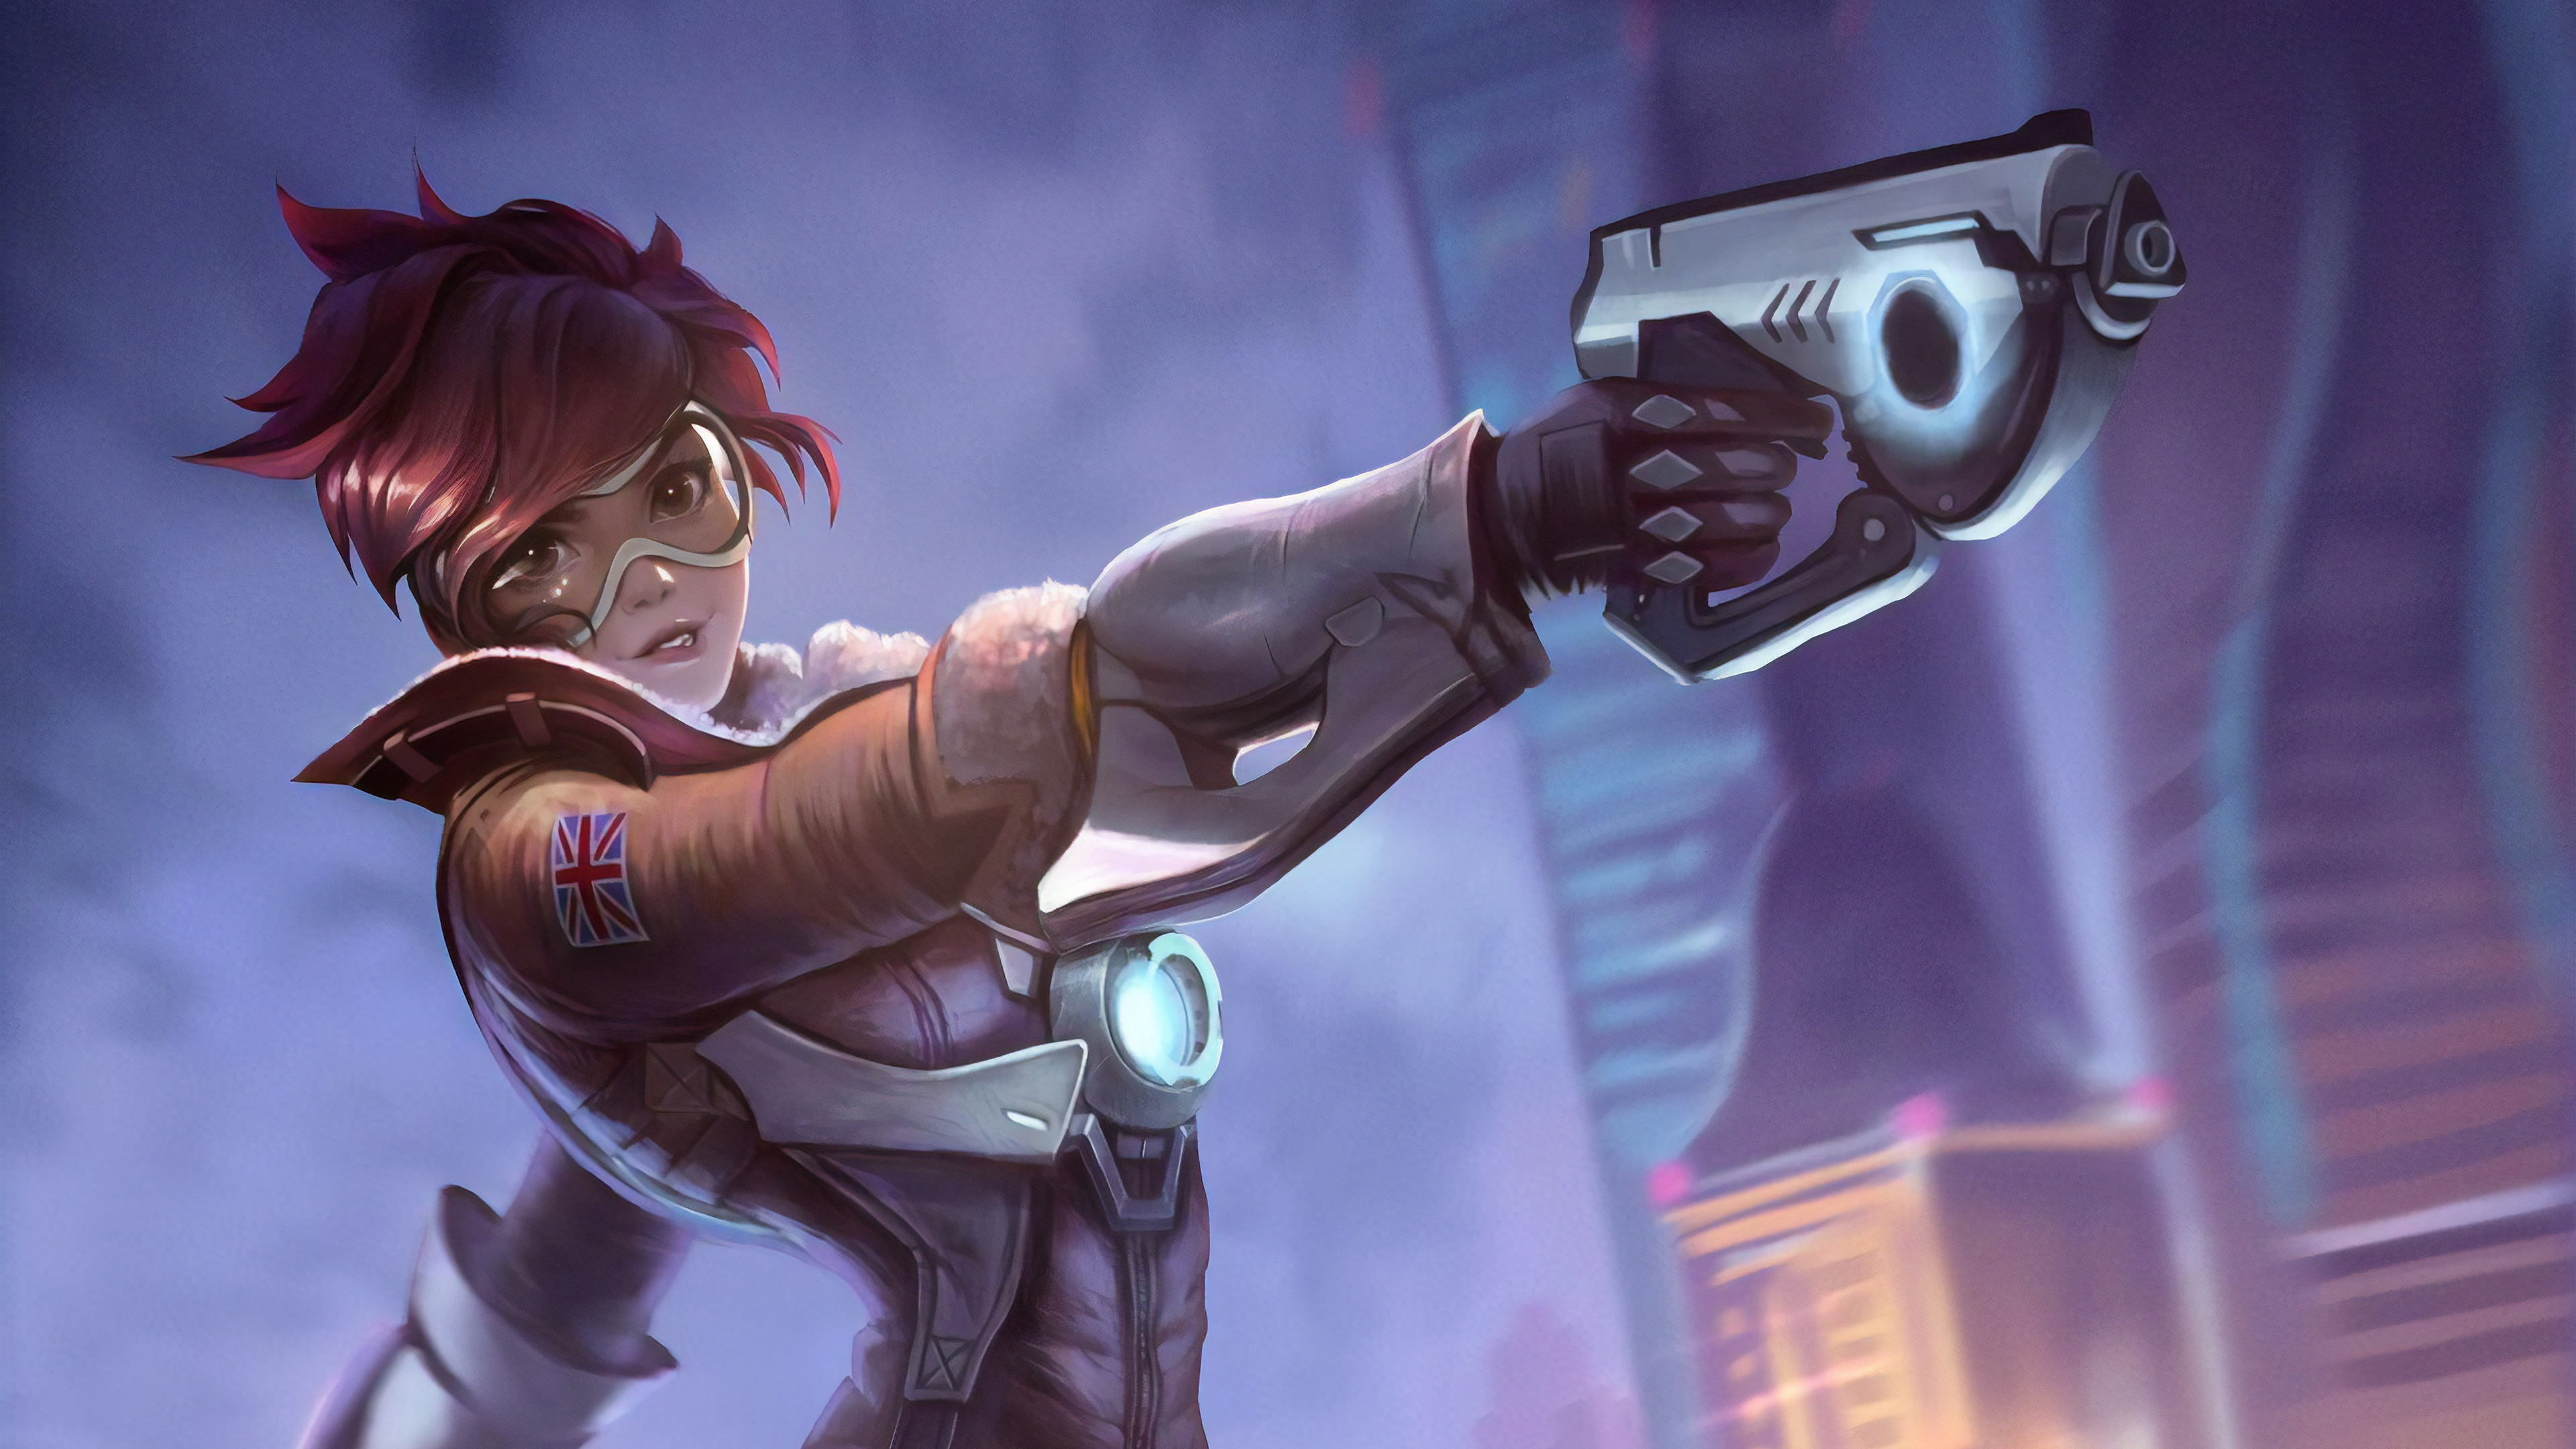 tracer overwatch art 1568056129 - Tracer Overwatch Art - xbox games wallpapers, tracer overwatch wallpapers, ps games wallpapers, pc games wallpapers, overwatch wallpapers, hd-wallpapers, games wallpapers, digital art wallpapers, deviantart wallpapers, artwork wallpapers, artist wallpapers, 4k-wallpapers, 2019 games wallpapers